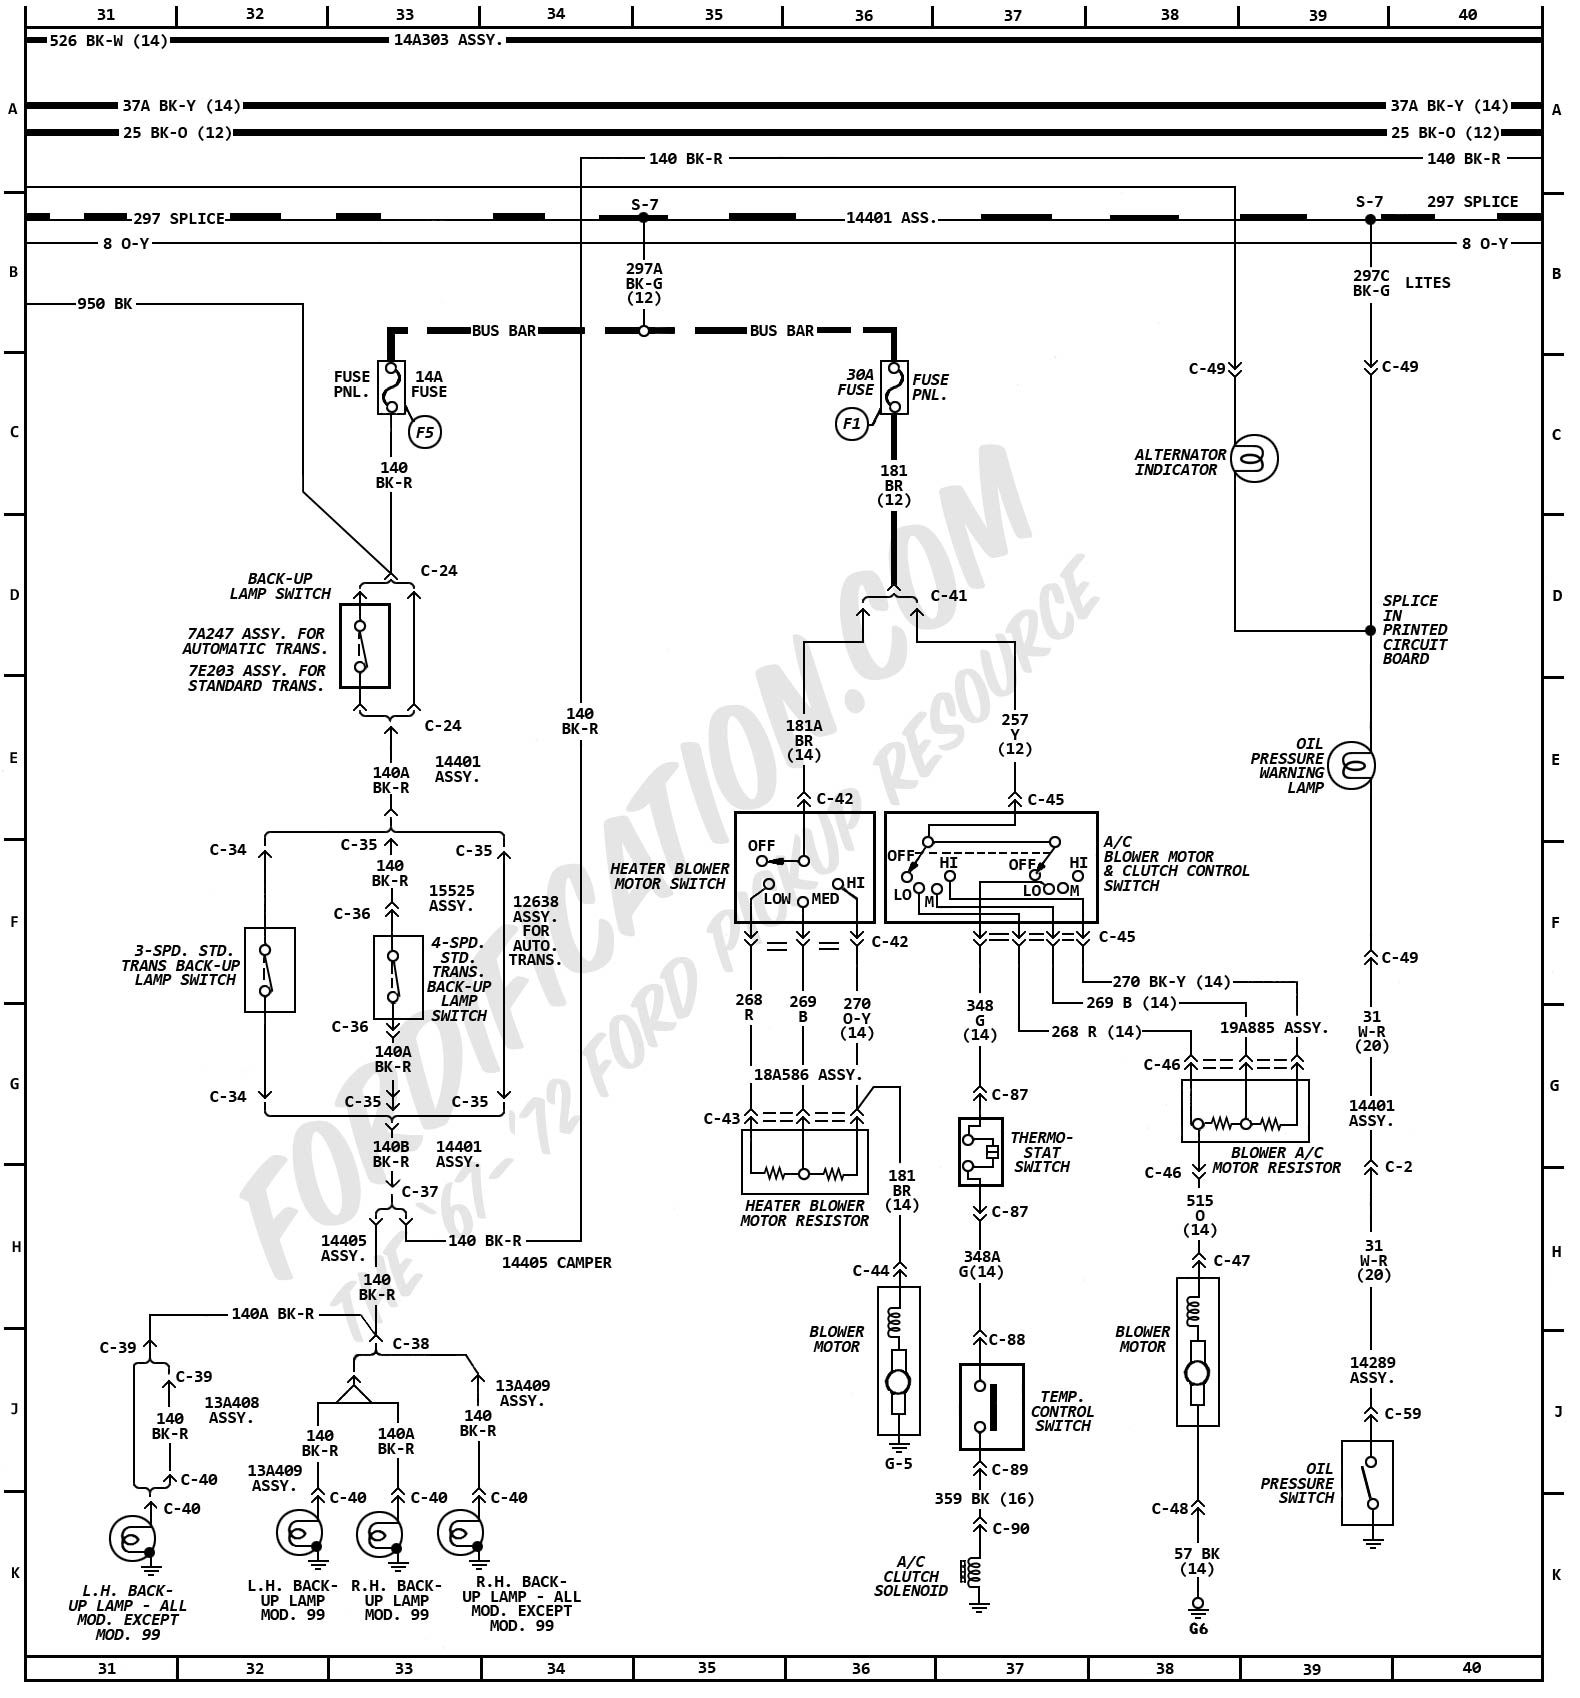 1972 ford truck wiring diagrams - fordification.com 1955 f100 wiring diagram 1972 f100 wiring diagram #5